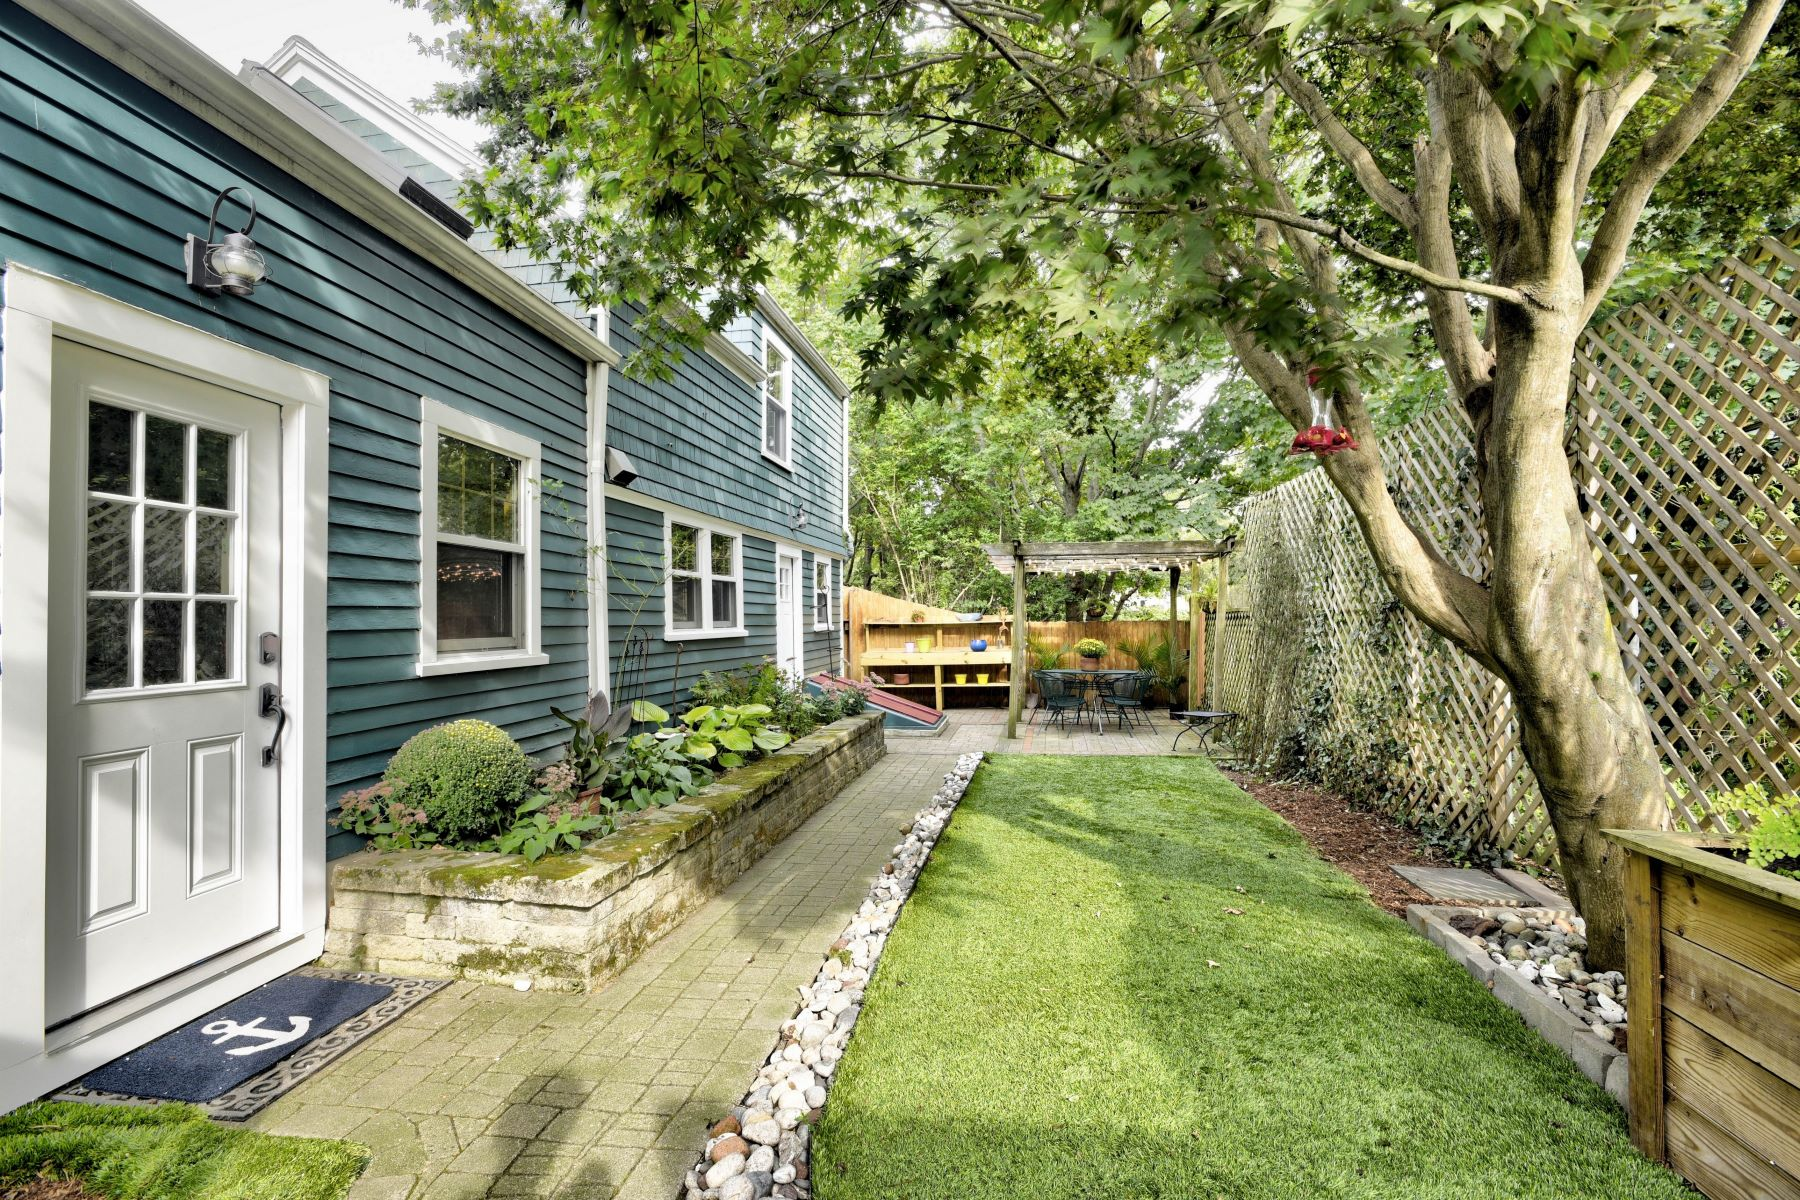 Single Family Homes for Sale at Charming Cottage on The Point 5 & 5 1/2 Gladding Court Newport, Rhode Island 02840 United States